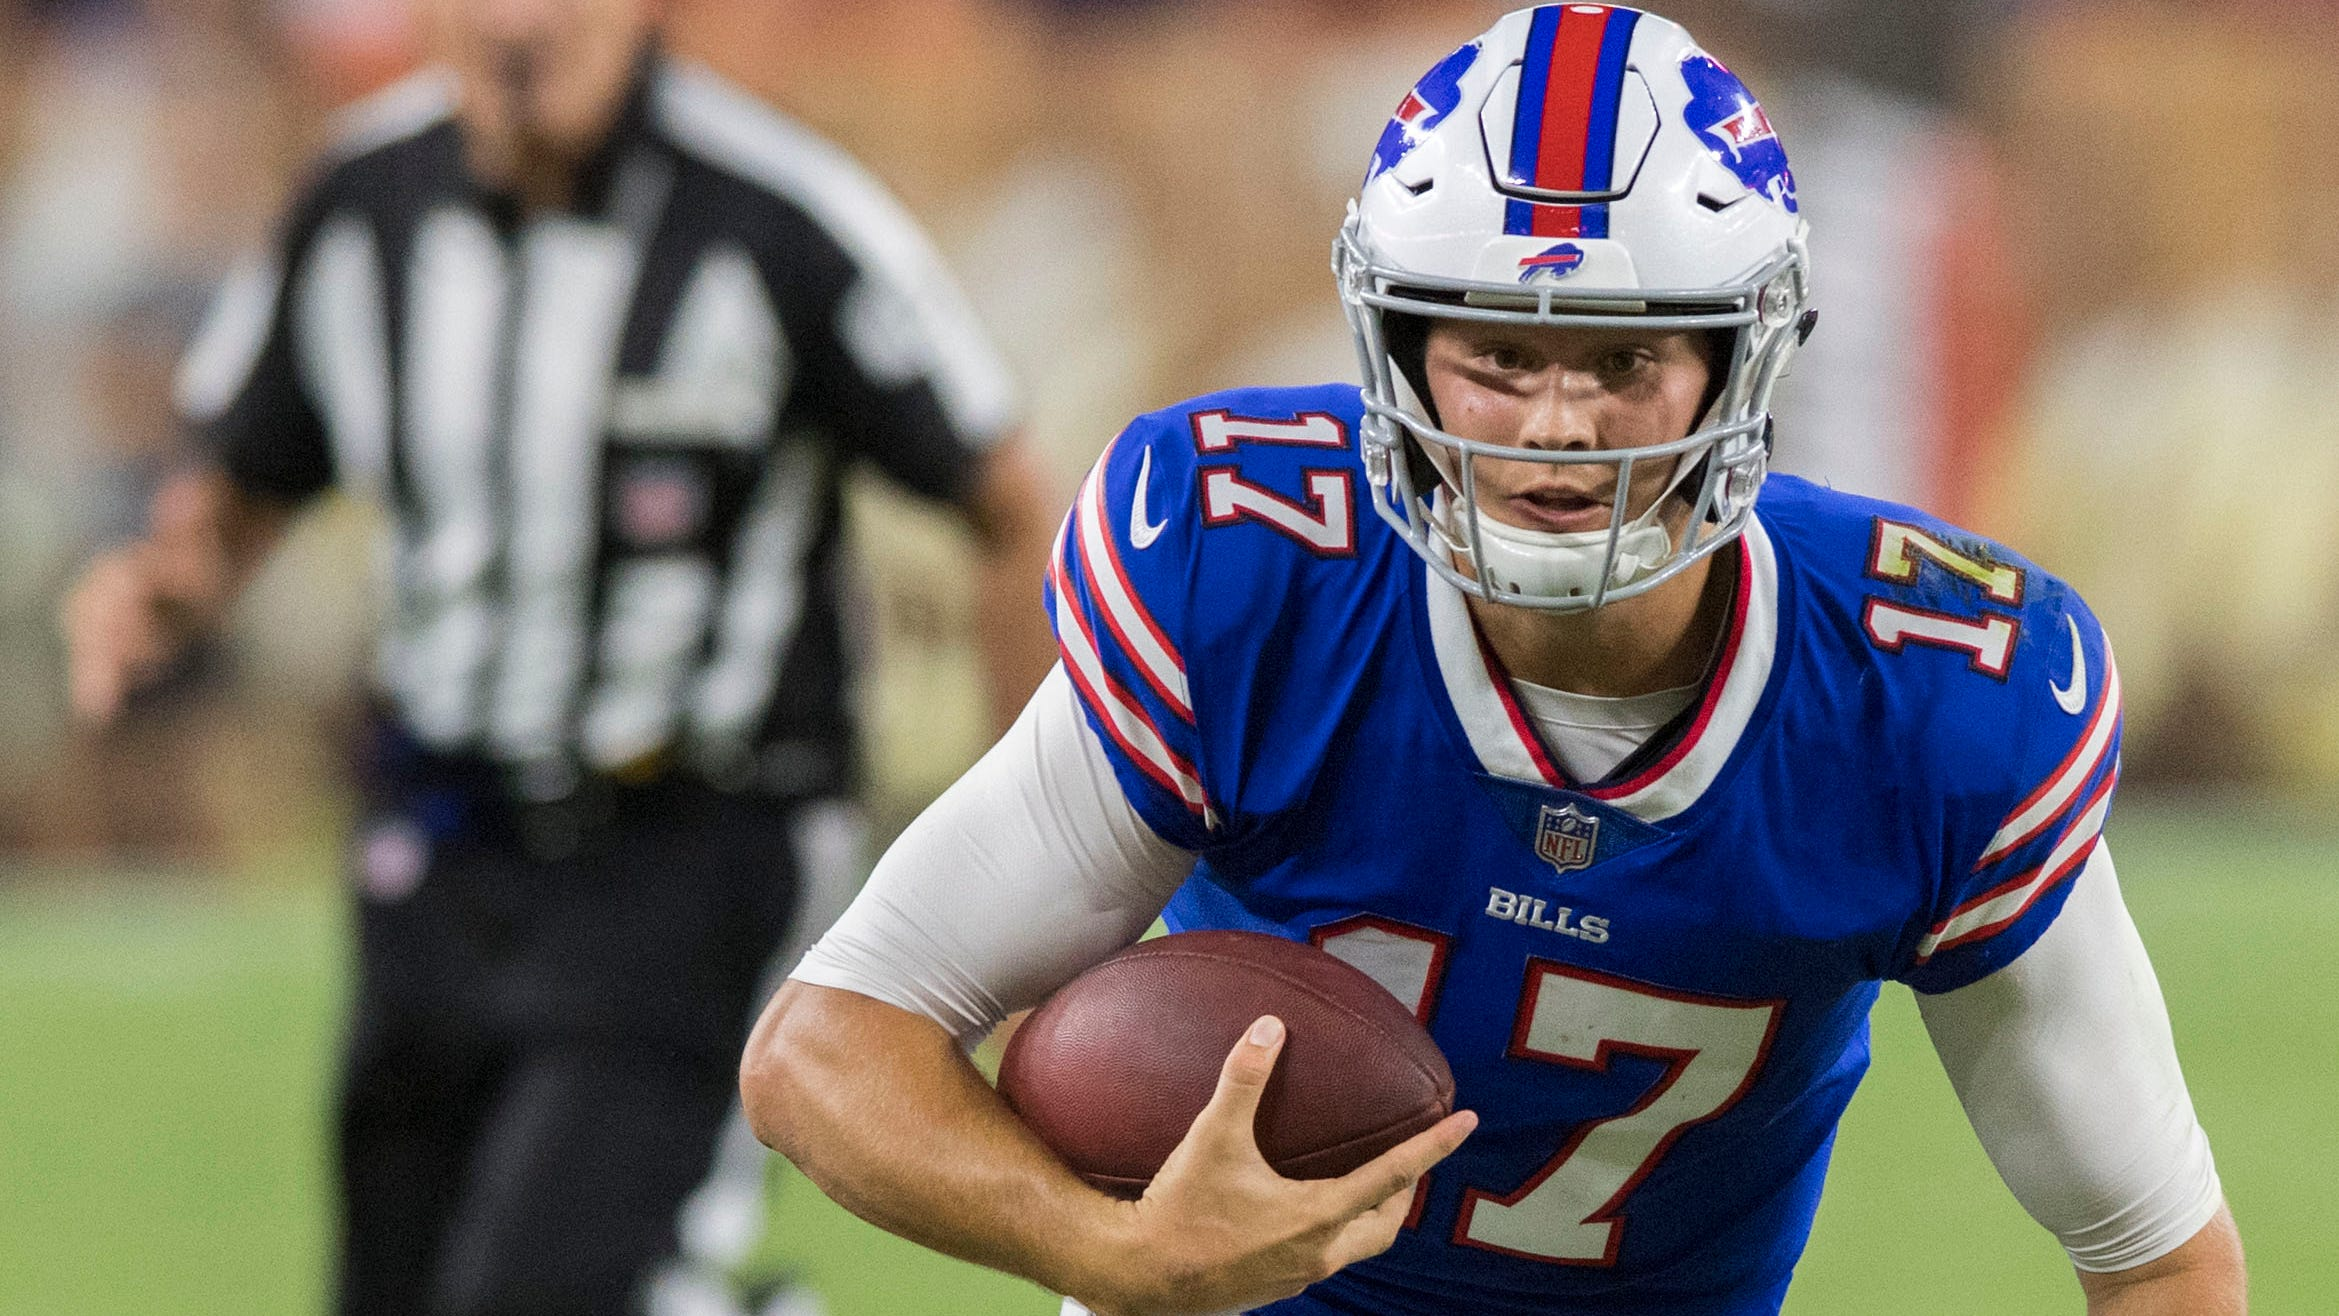 Josh Allen runs with the ball against the Browns.